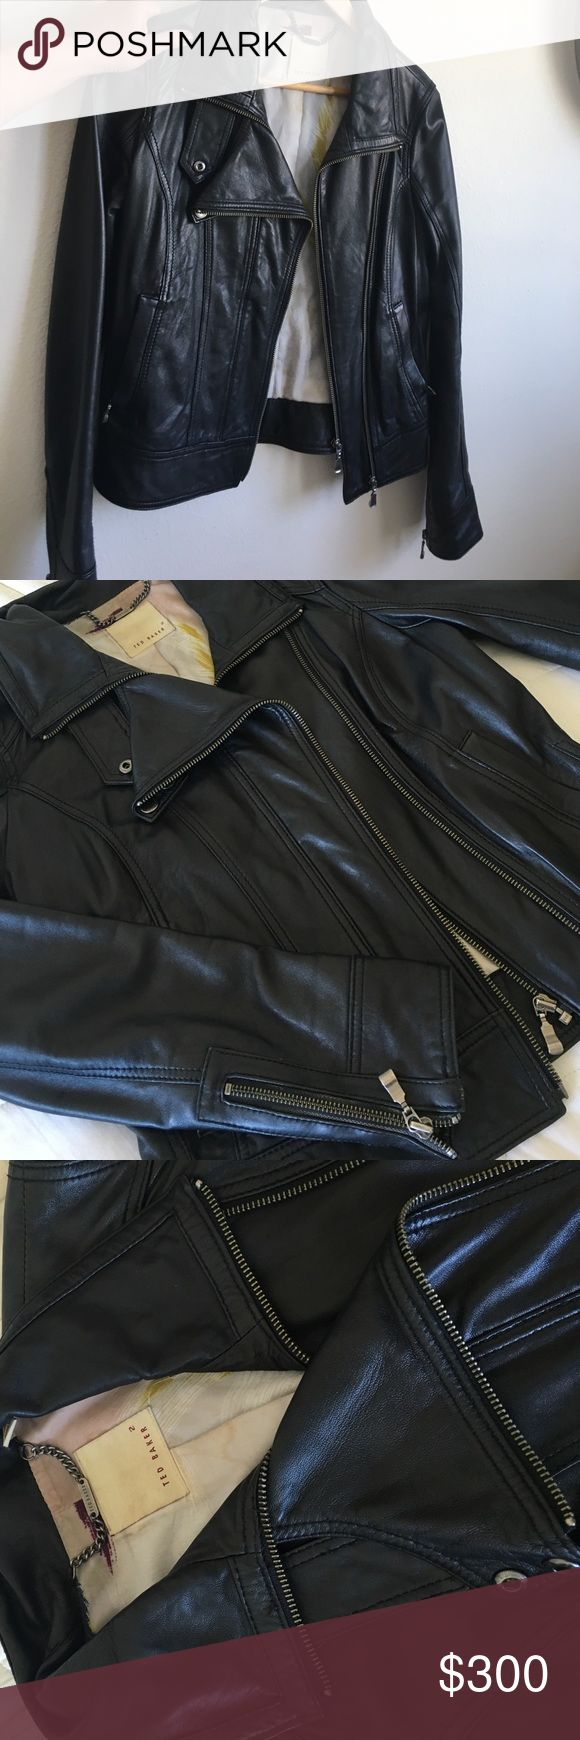 Ted Baker leather jacket, size 2 Size 2, Ted Baker leather jacket. Black with dark silver metal details (zippers, buttons, etc.). Leather is in great condition! Ted Baker Jackets & Coats